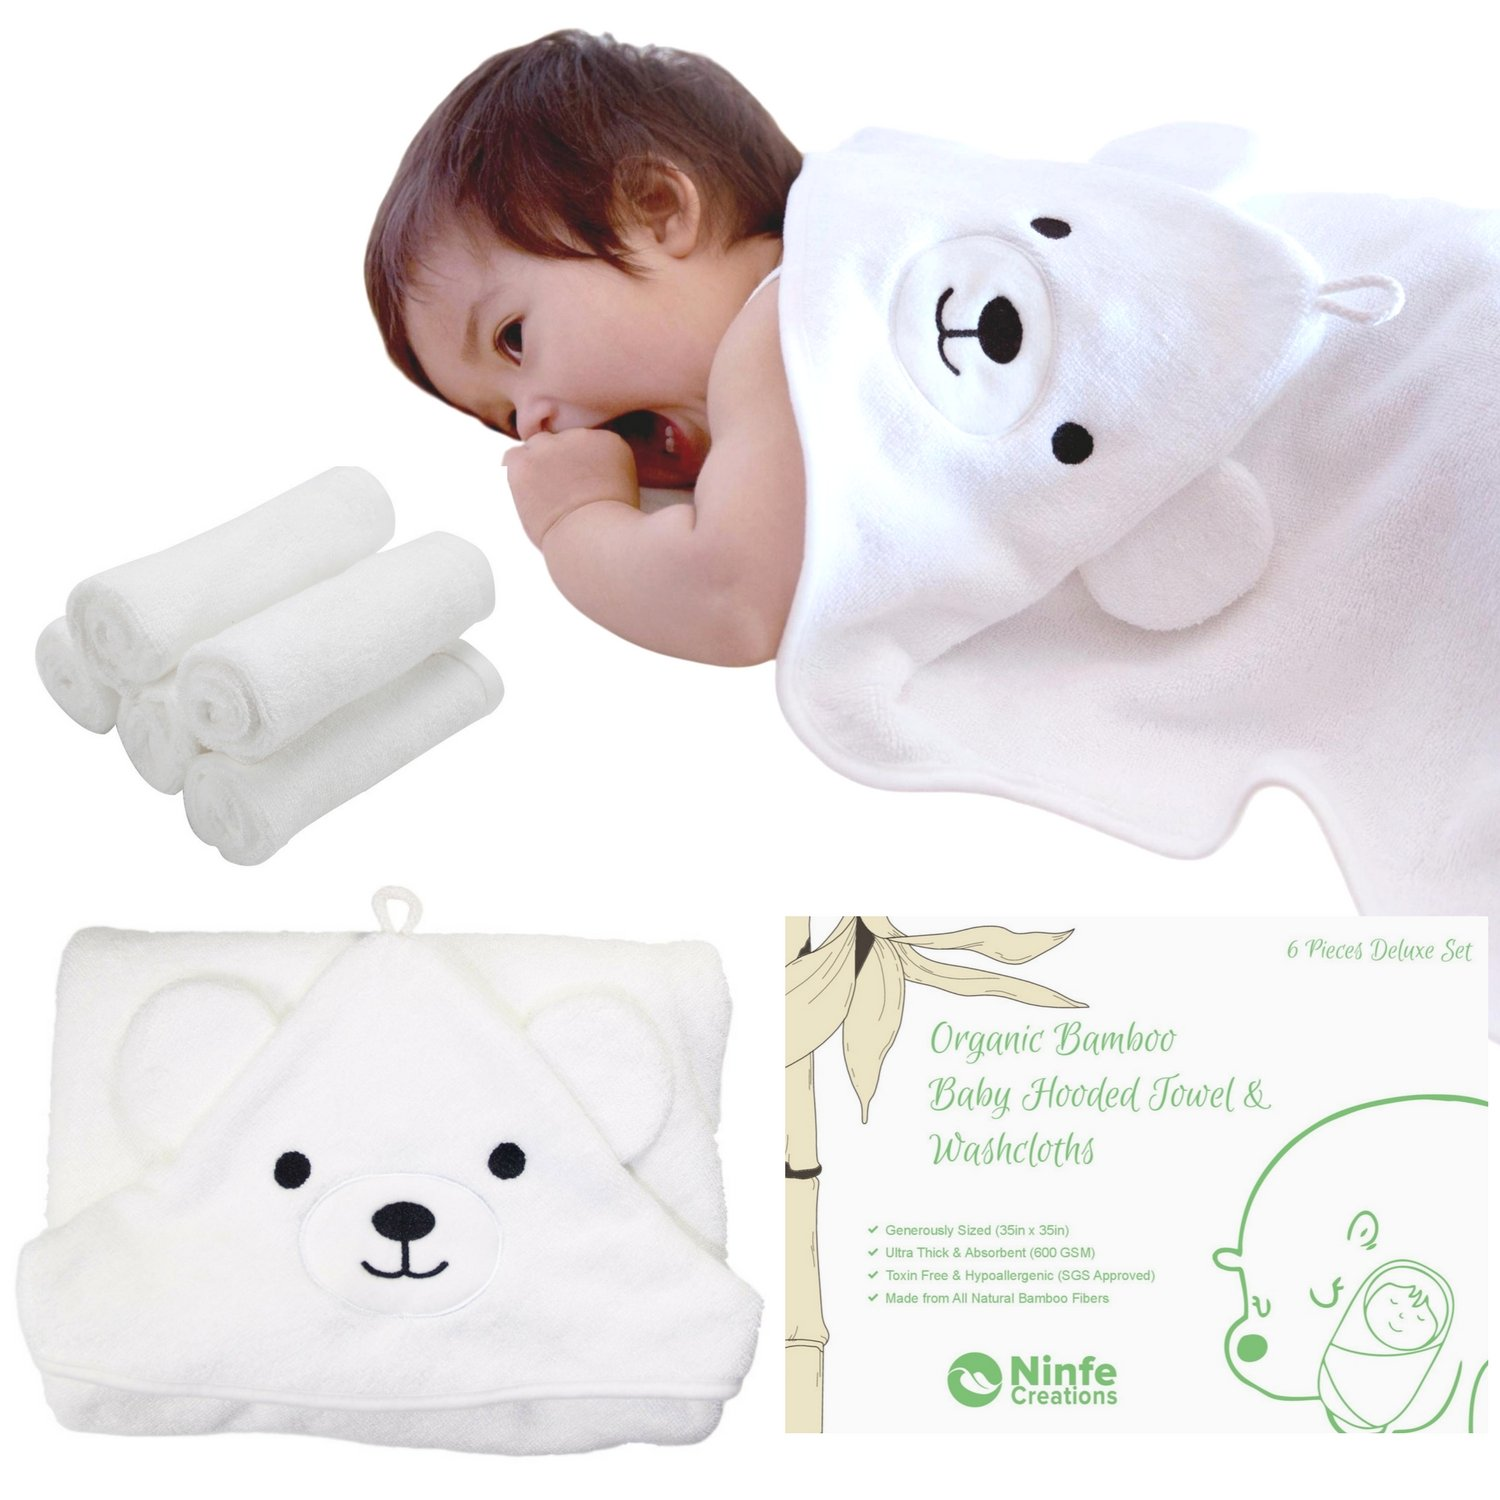 600 GSM Bamboo Baby Hooded Towel & 5 Pcs Washcloths Set - 100% Organic, Ultra-thick, Fluffy & Cozy - for Newborns, Toddlers and Kids